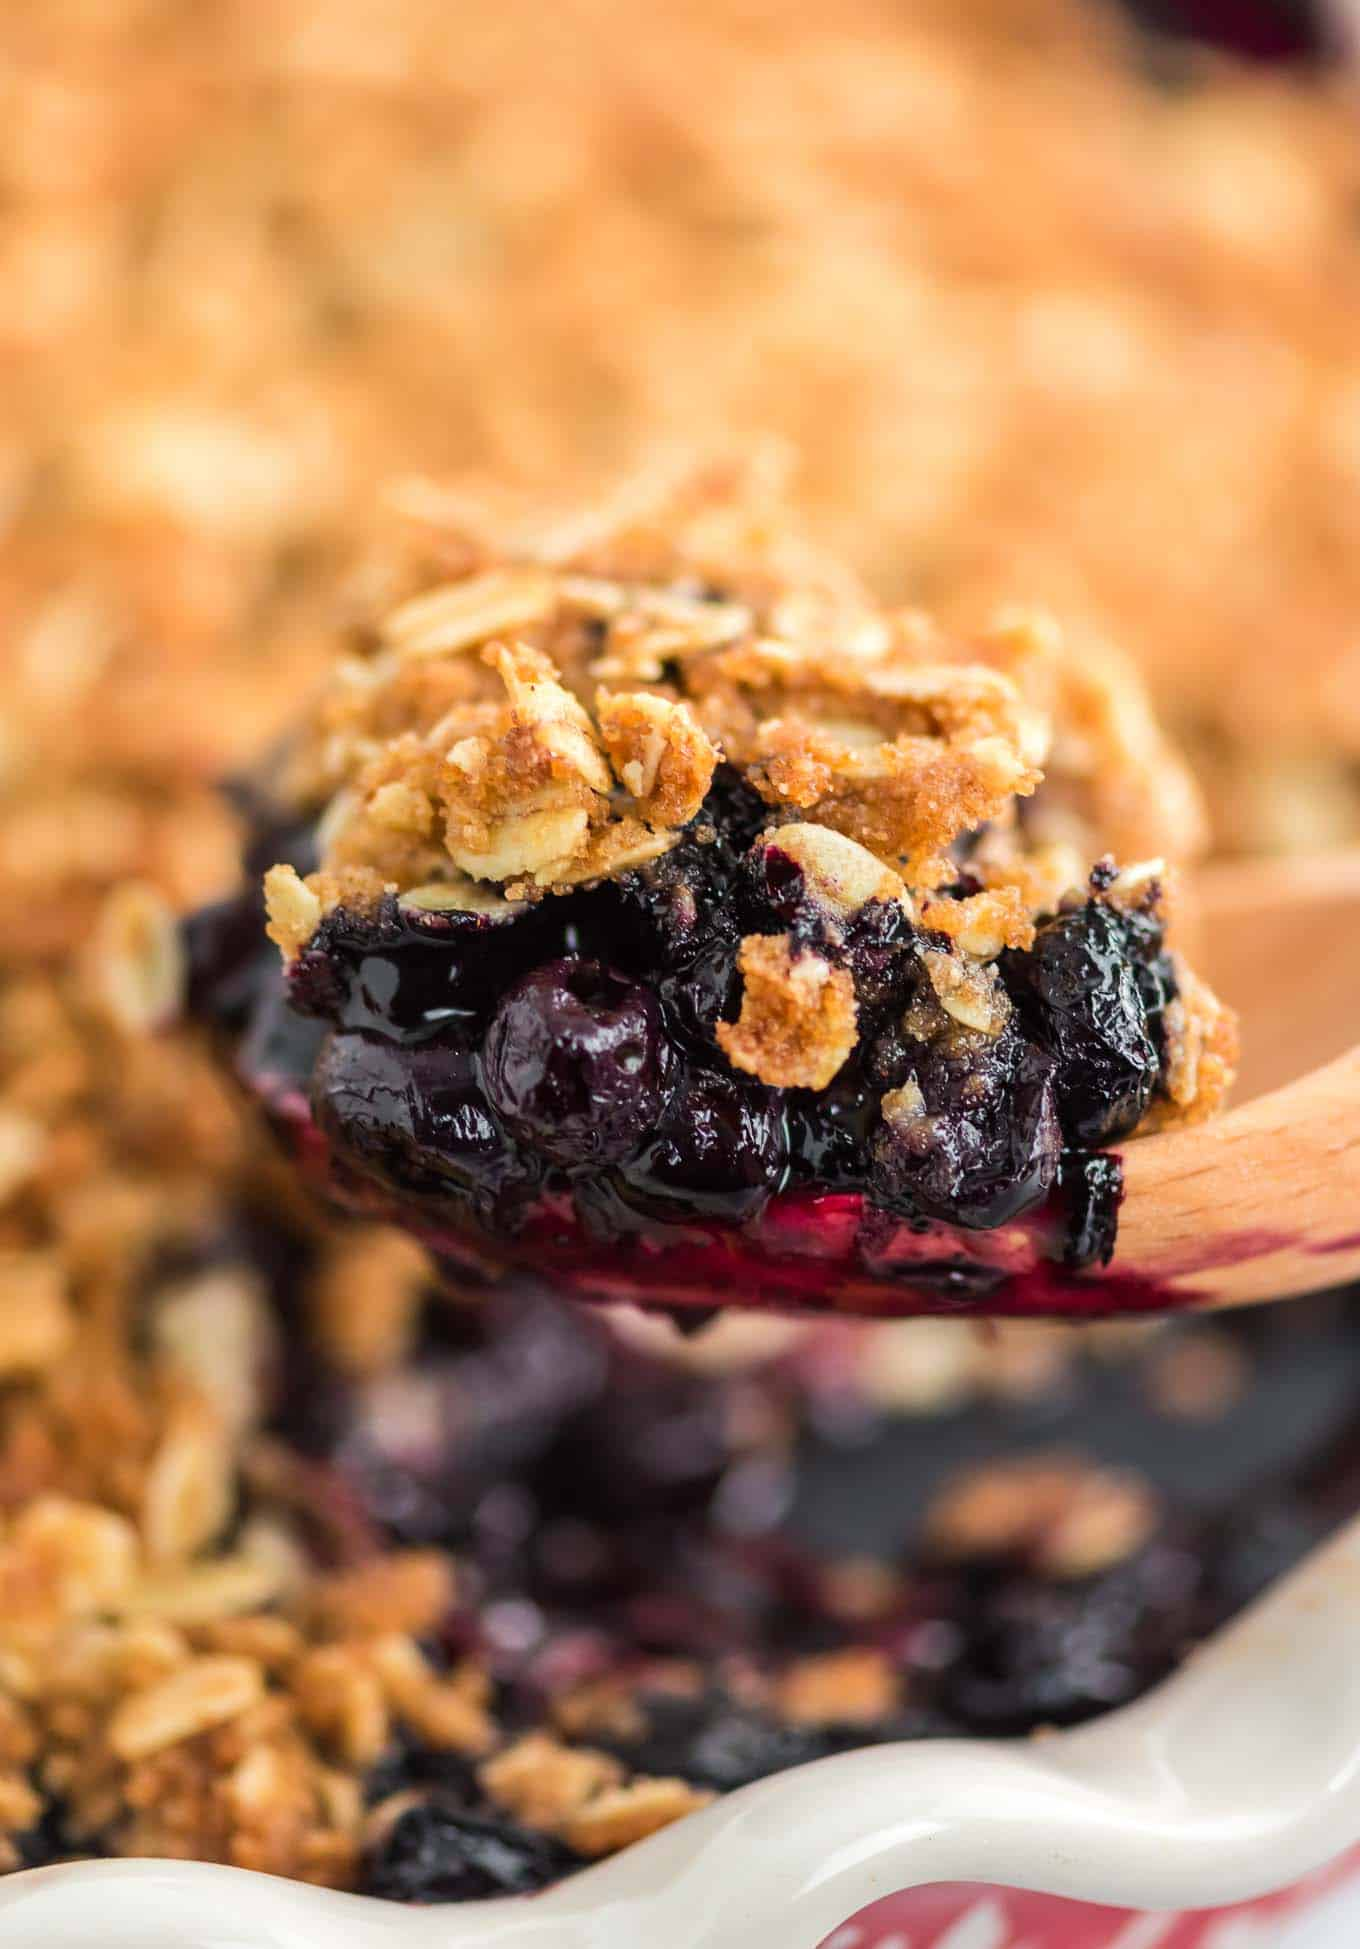 a wooden spoon taking a scoop of blueberry crisp